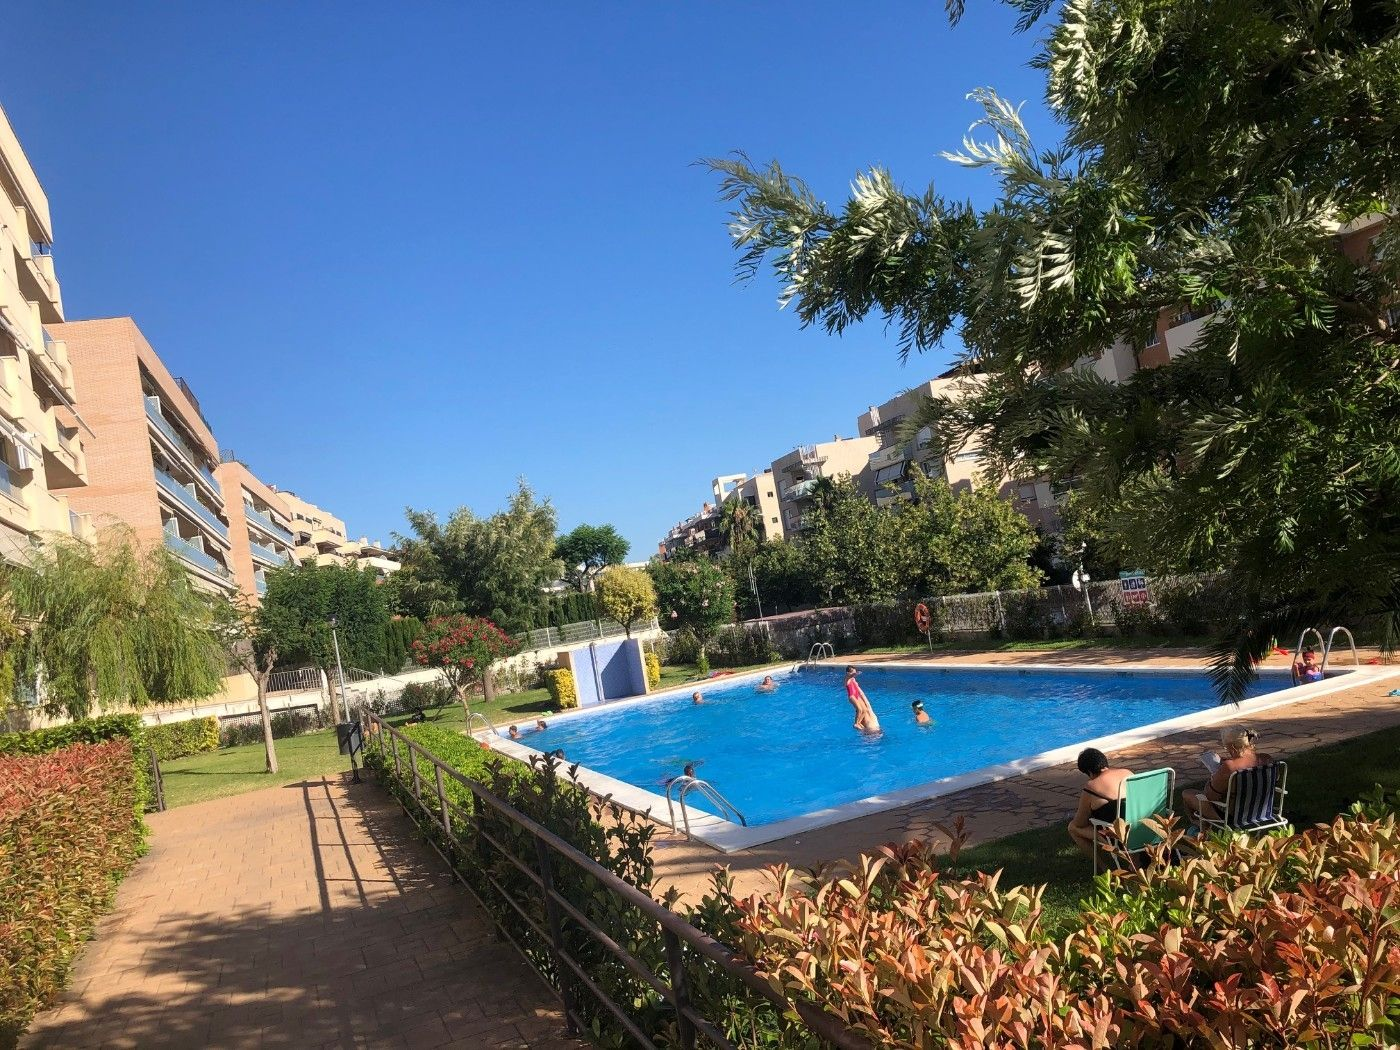 Location Appartement à Carrer barcelona (de), 98. ¡precioso piso con piscina!